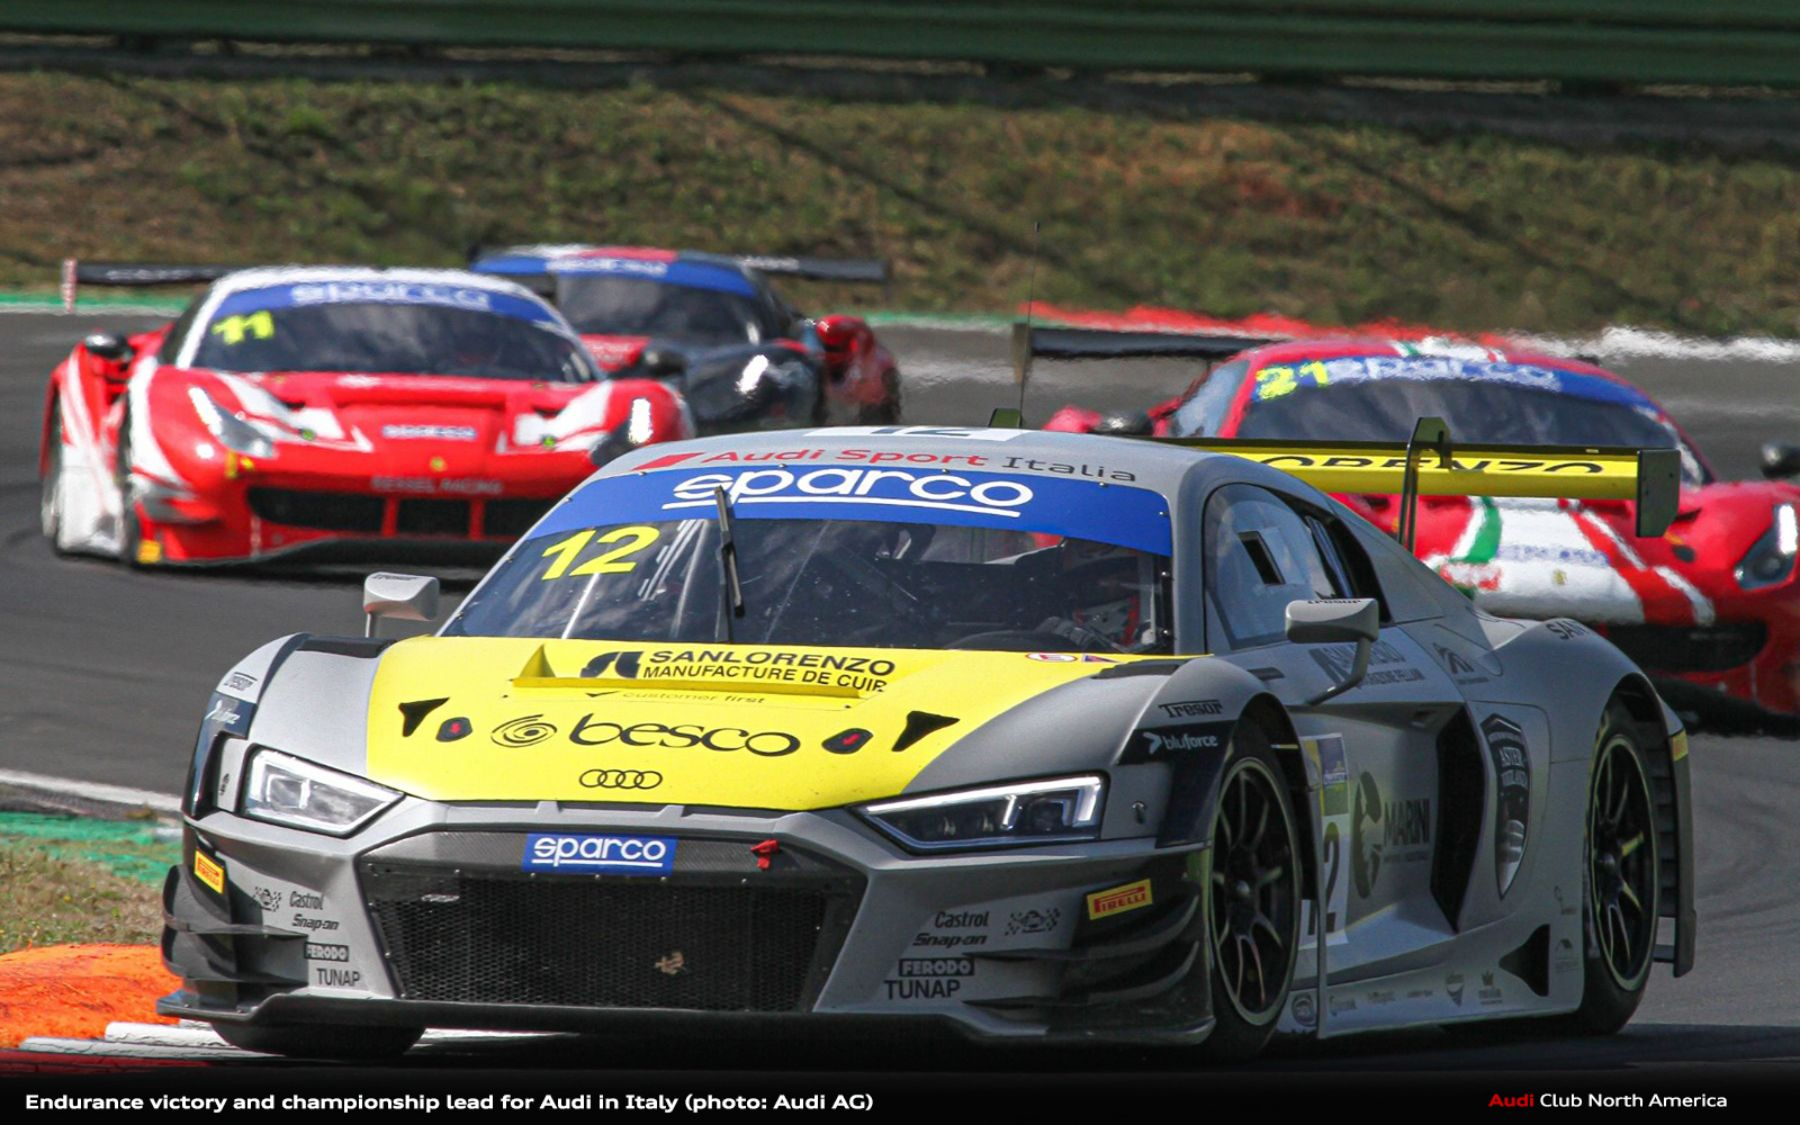 Endurance Victory and Championship Lead for Audi in Italy